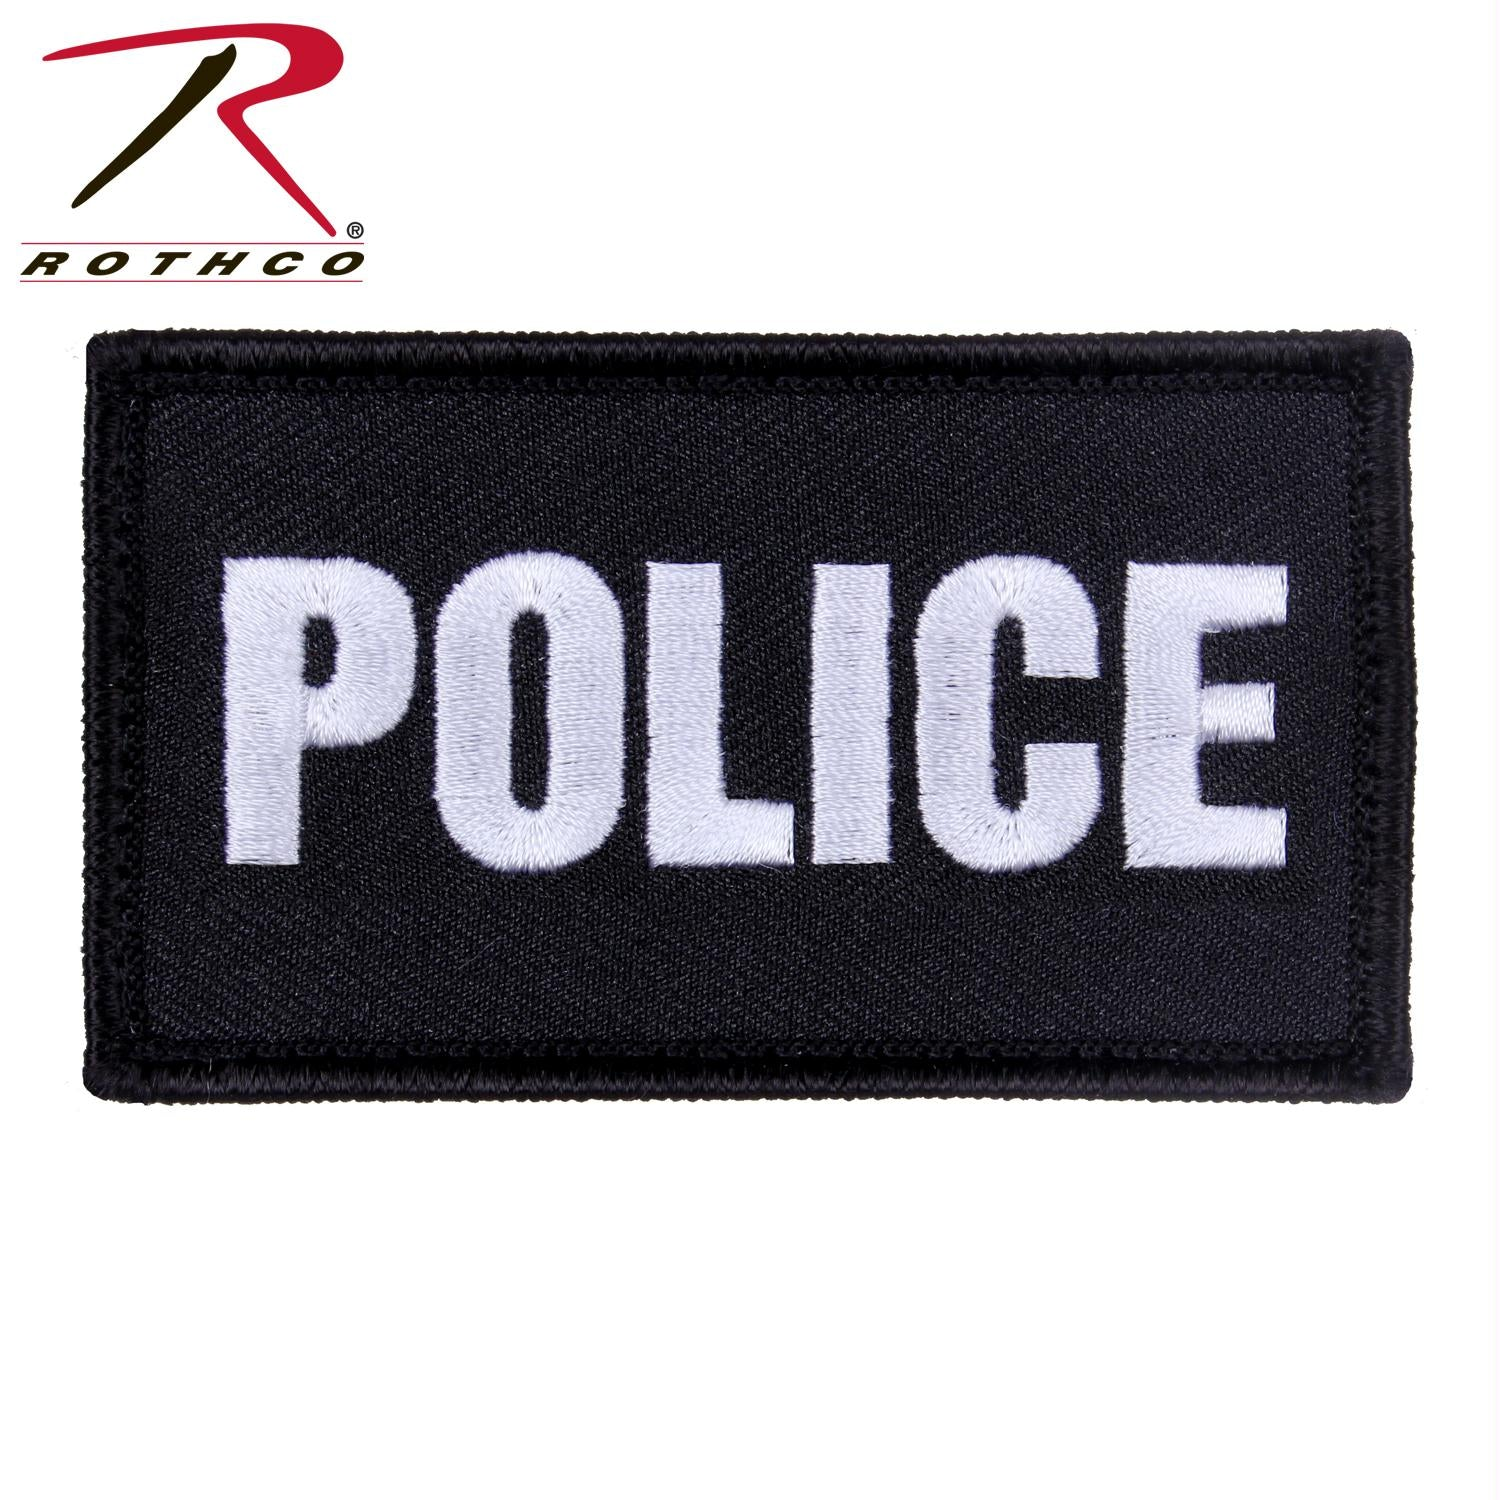 Rothco Police Patch with Hook Back - Black / White / One Size